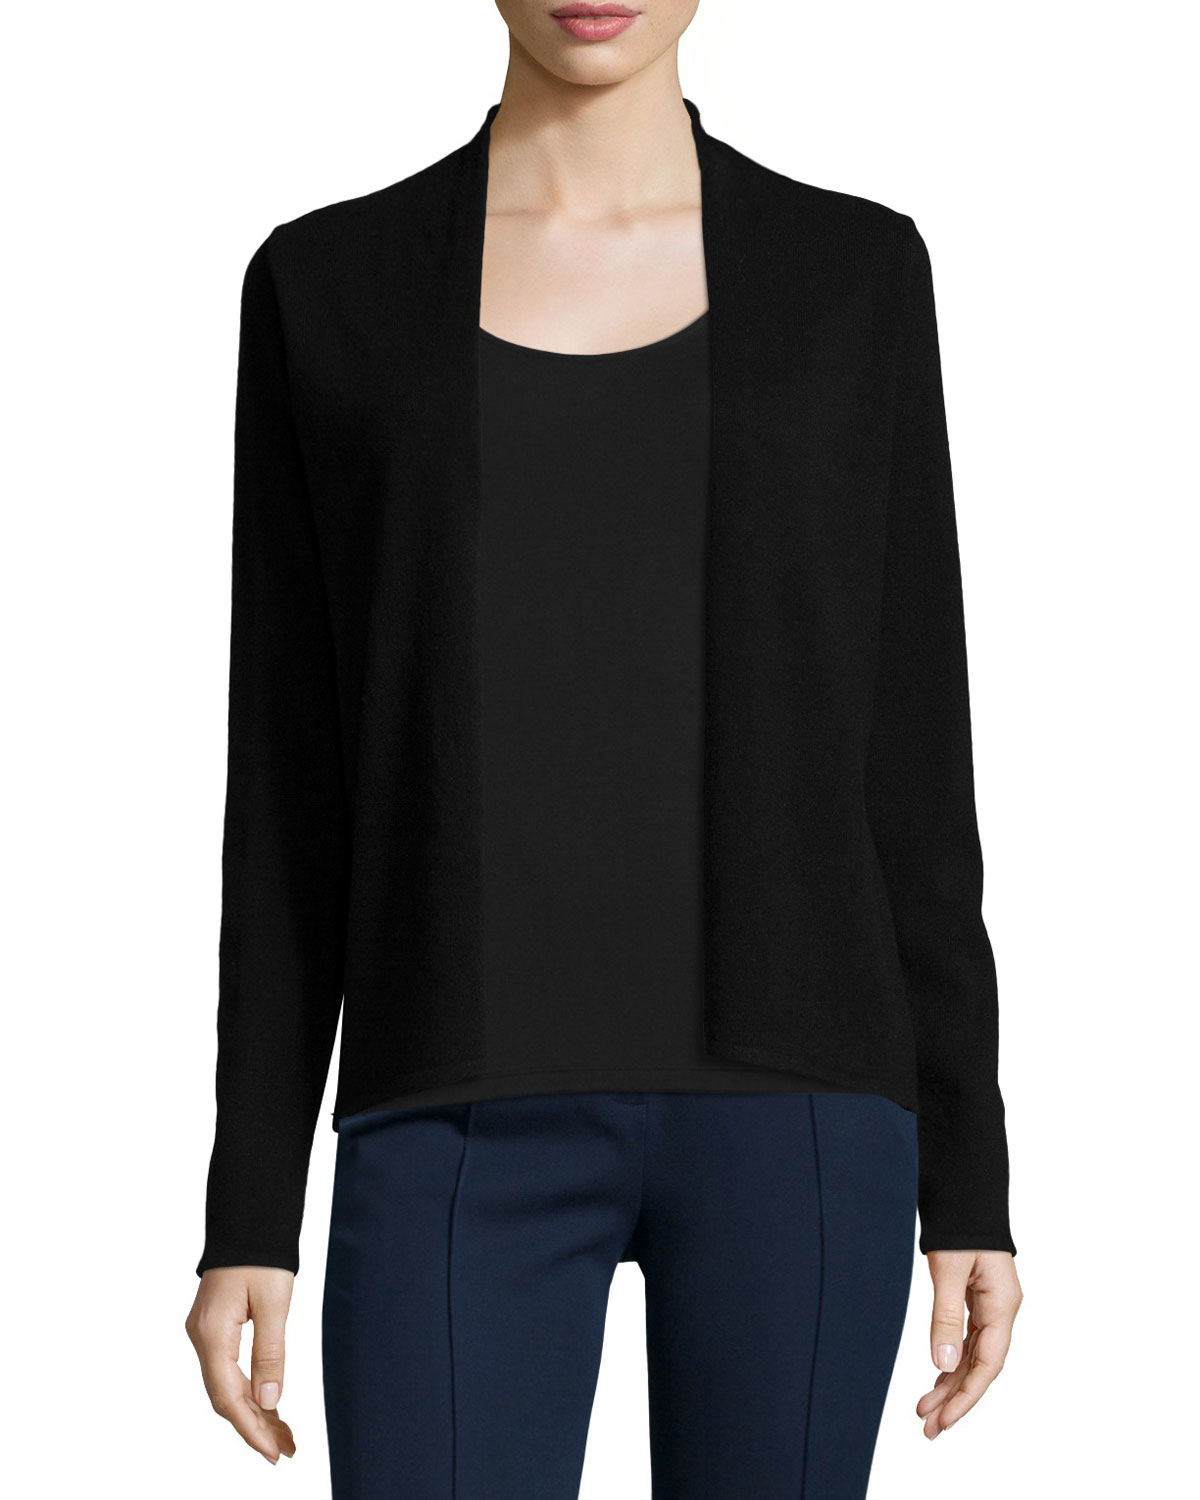 Elie tahari Stori Cashmere Open-front Sweater in Black | Lyst